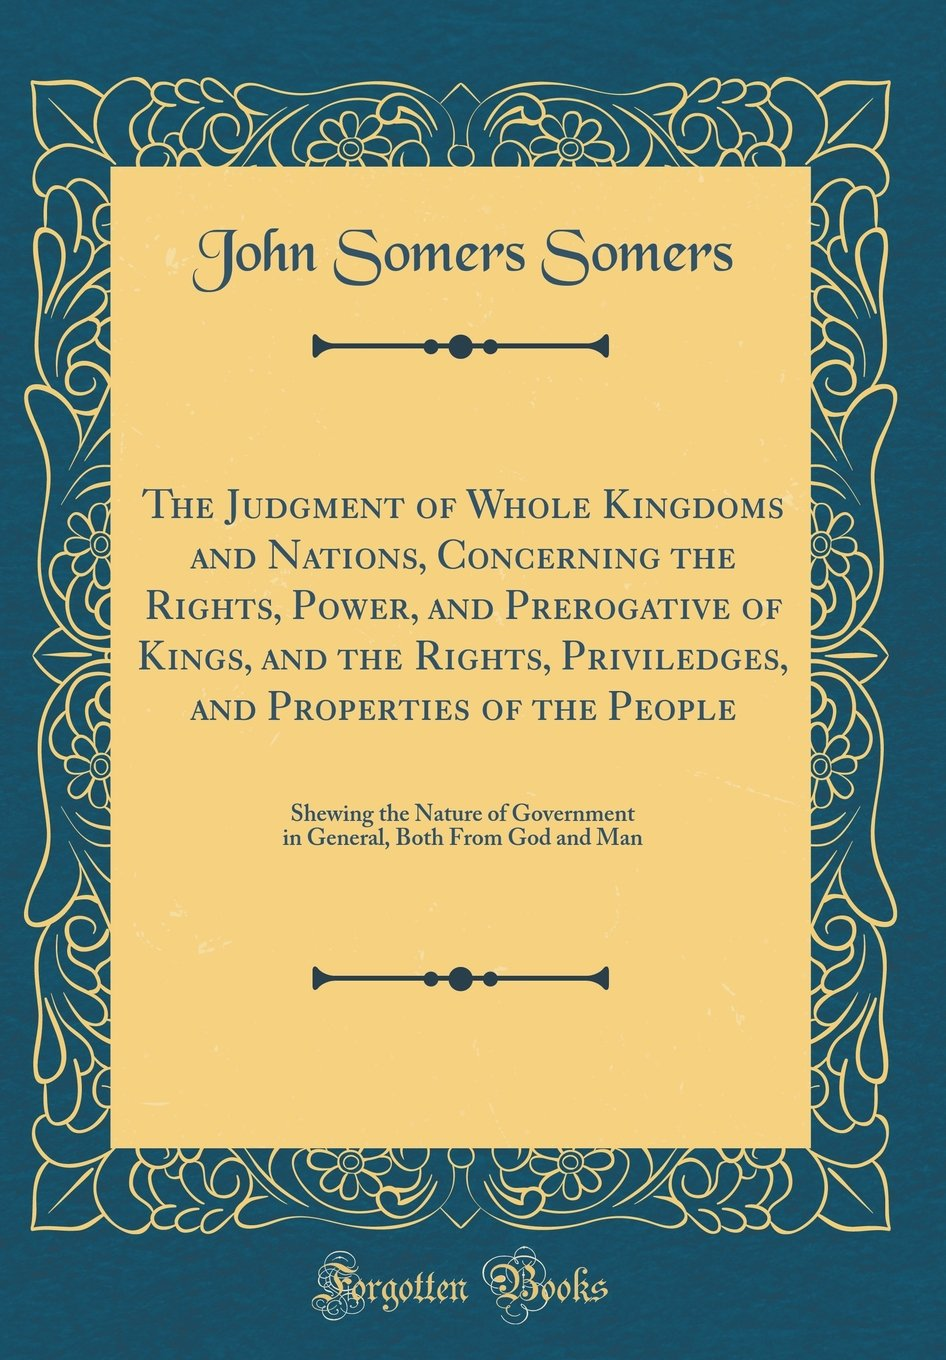 Download The Judgment of Whole Kingdoms and Nations, Concerning the Rights, Power, and Prerogative of Kings, and the Rights, Priviledges, and Properties of the ... Both From God and Man (Classic Reprint) pdf